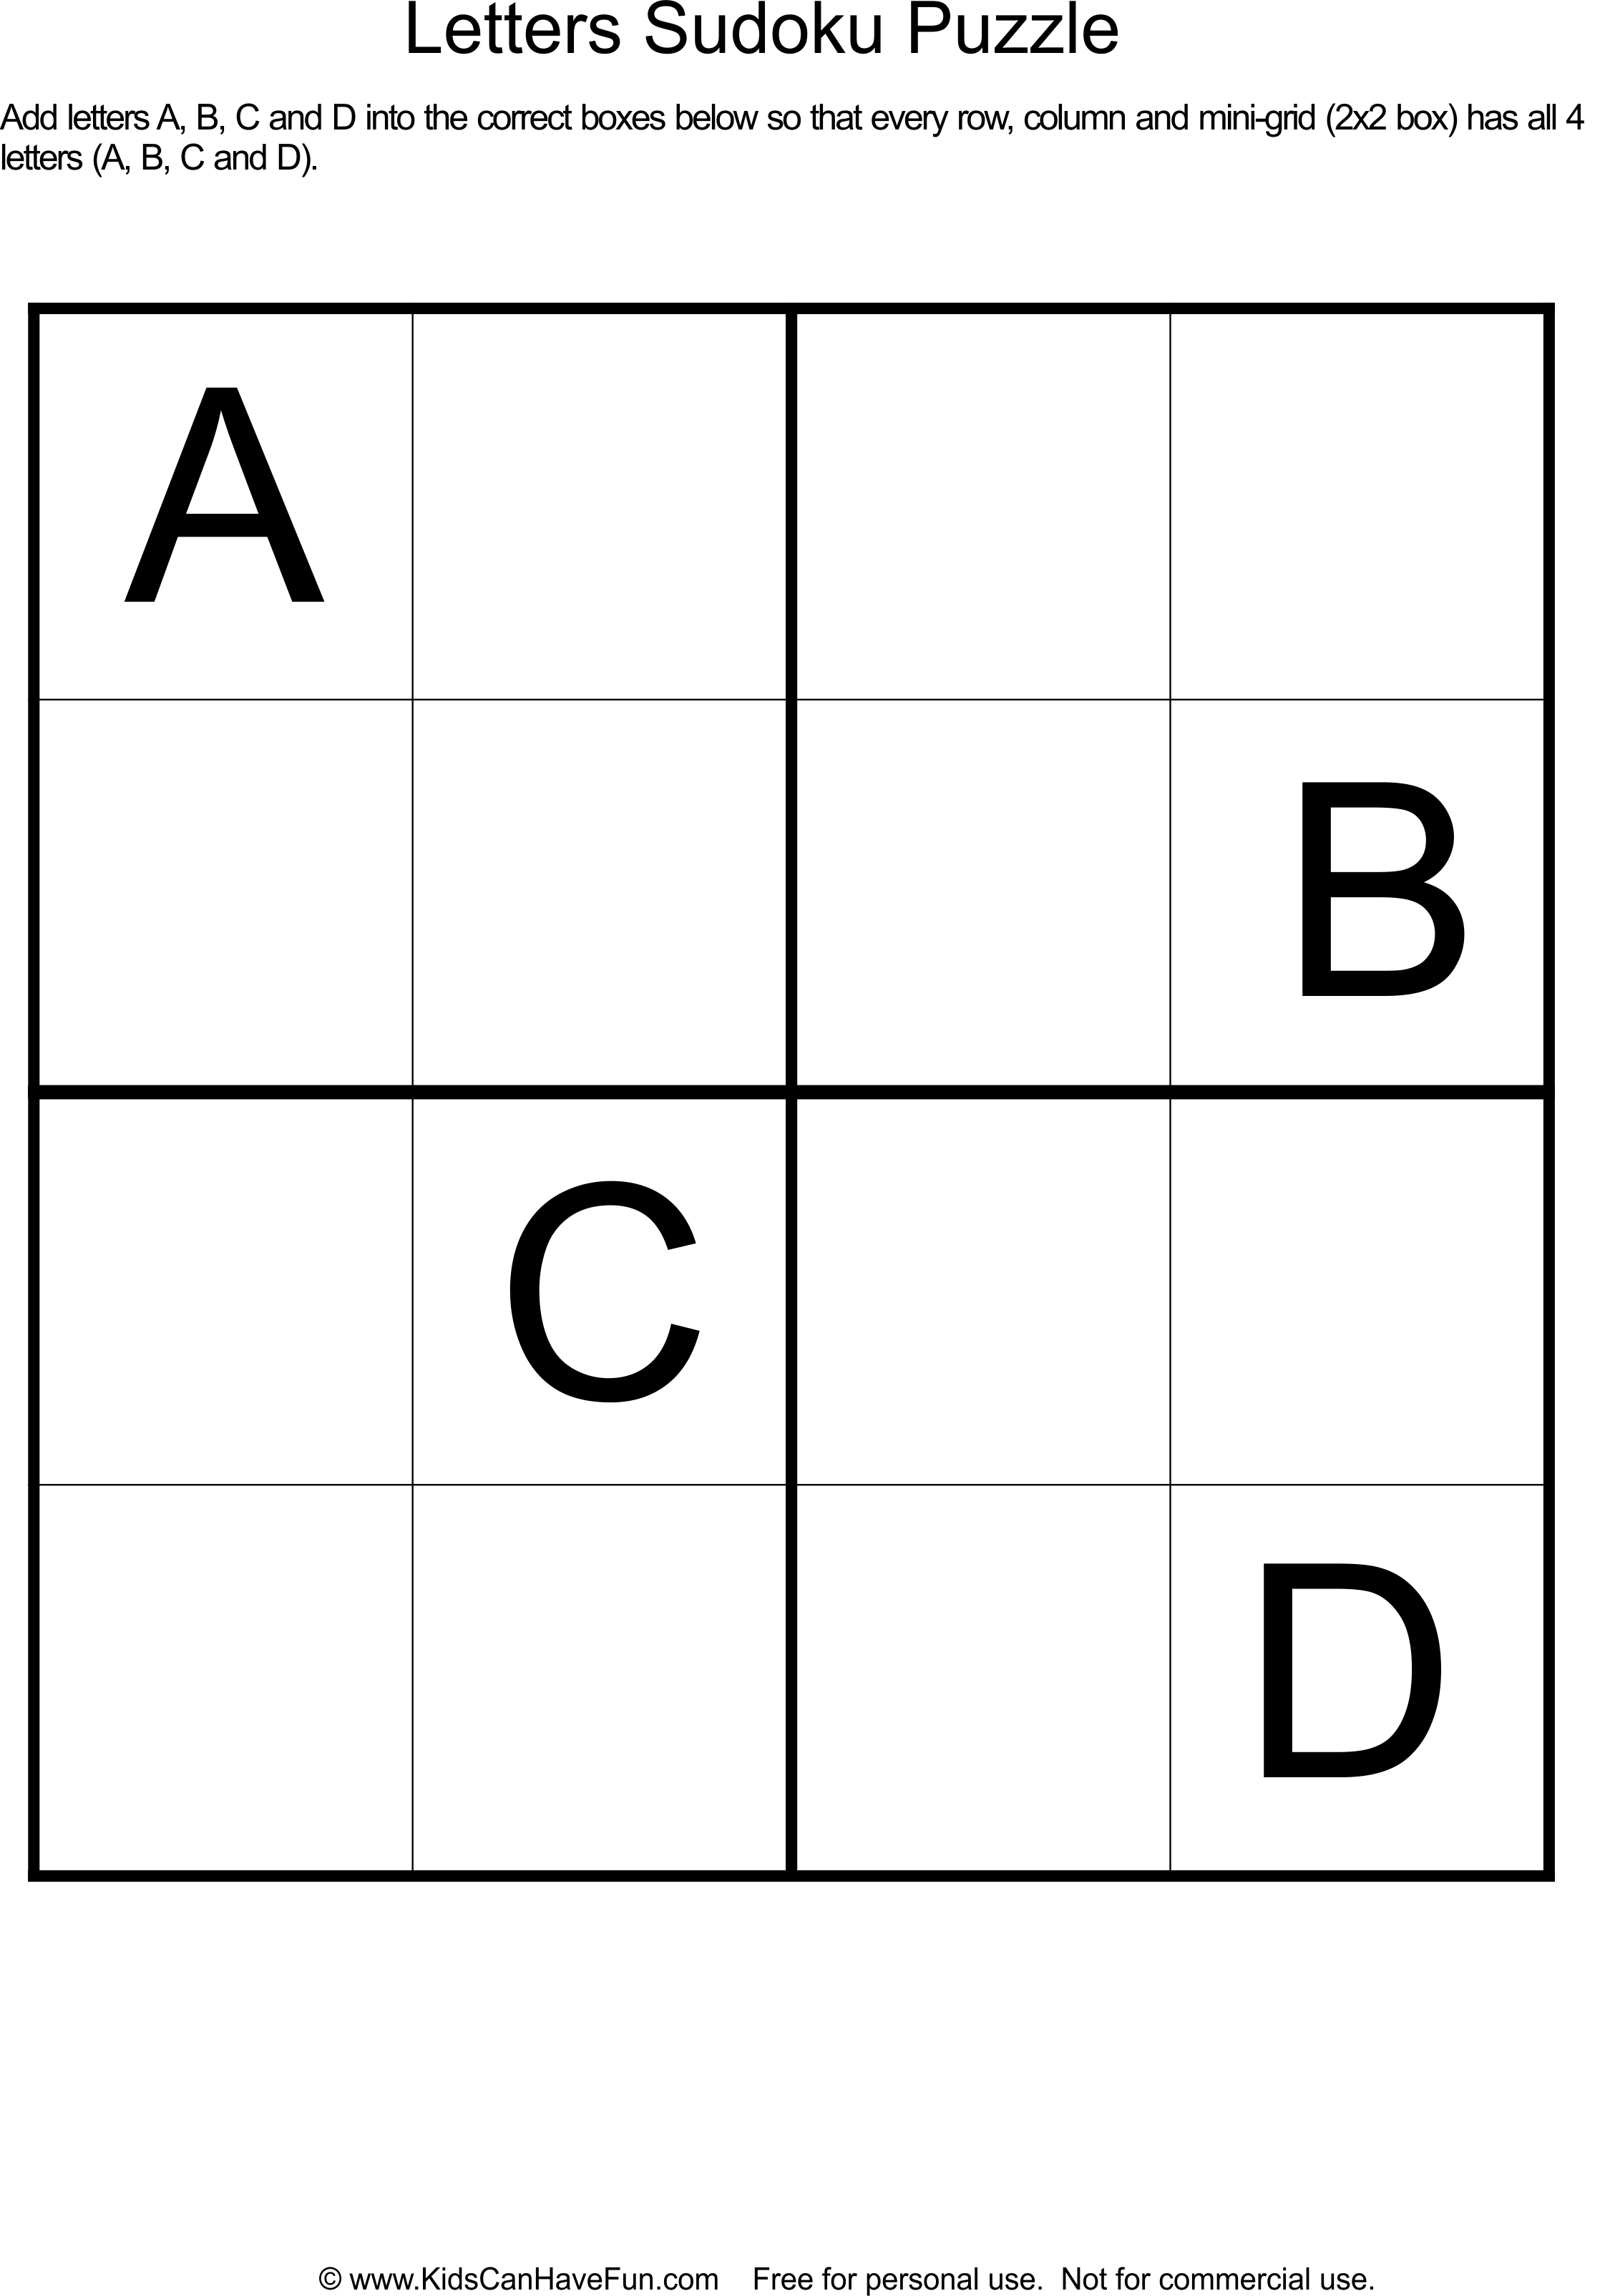 Sudoku Letters Puzzle For Kids Dscanhavefun